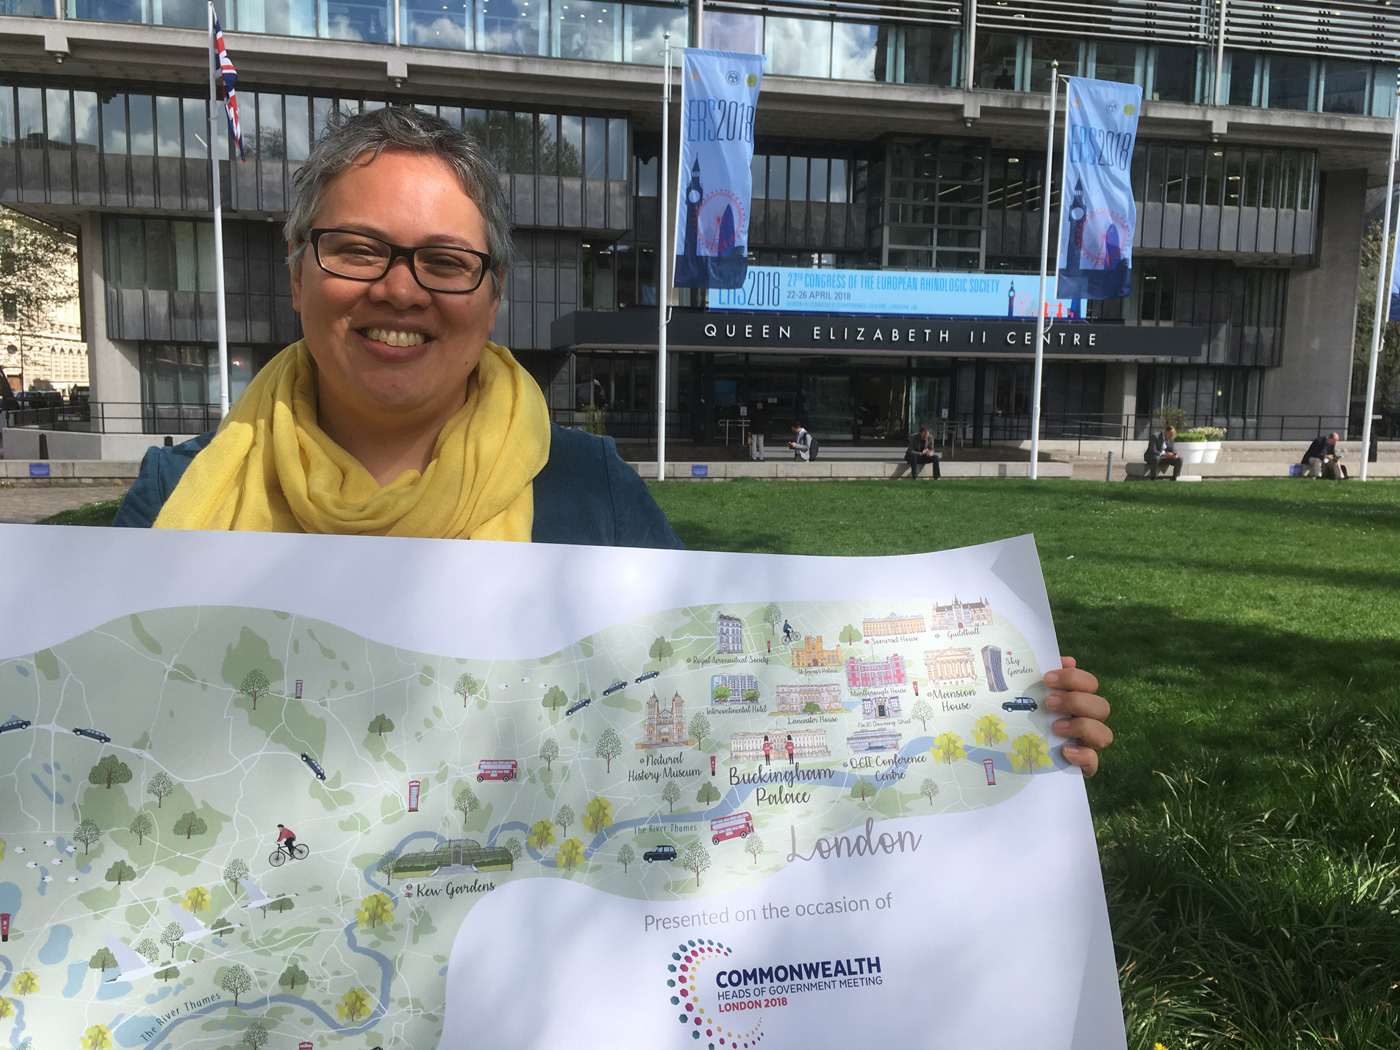 Caroline Robinson, Founder & Lead Cartographer, holding illustrated map along the River Thames from Windsor to Central London